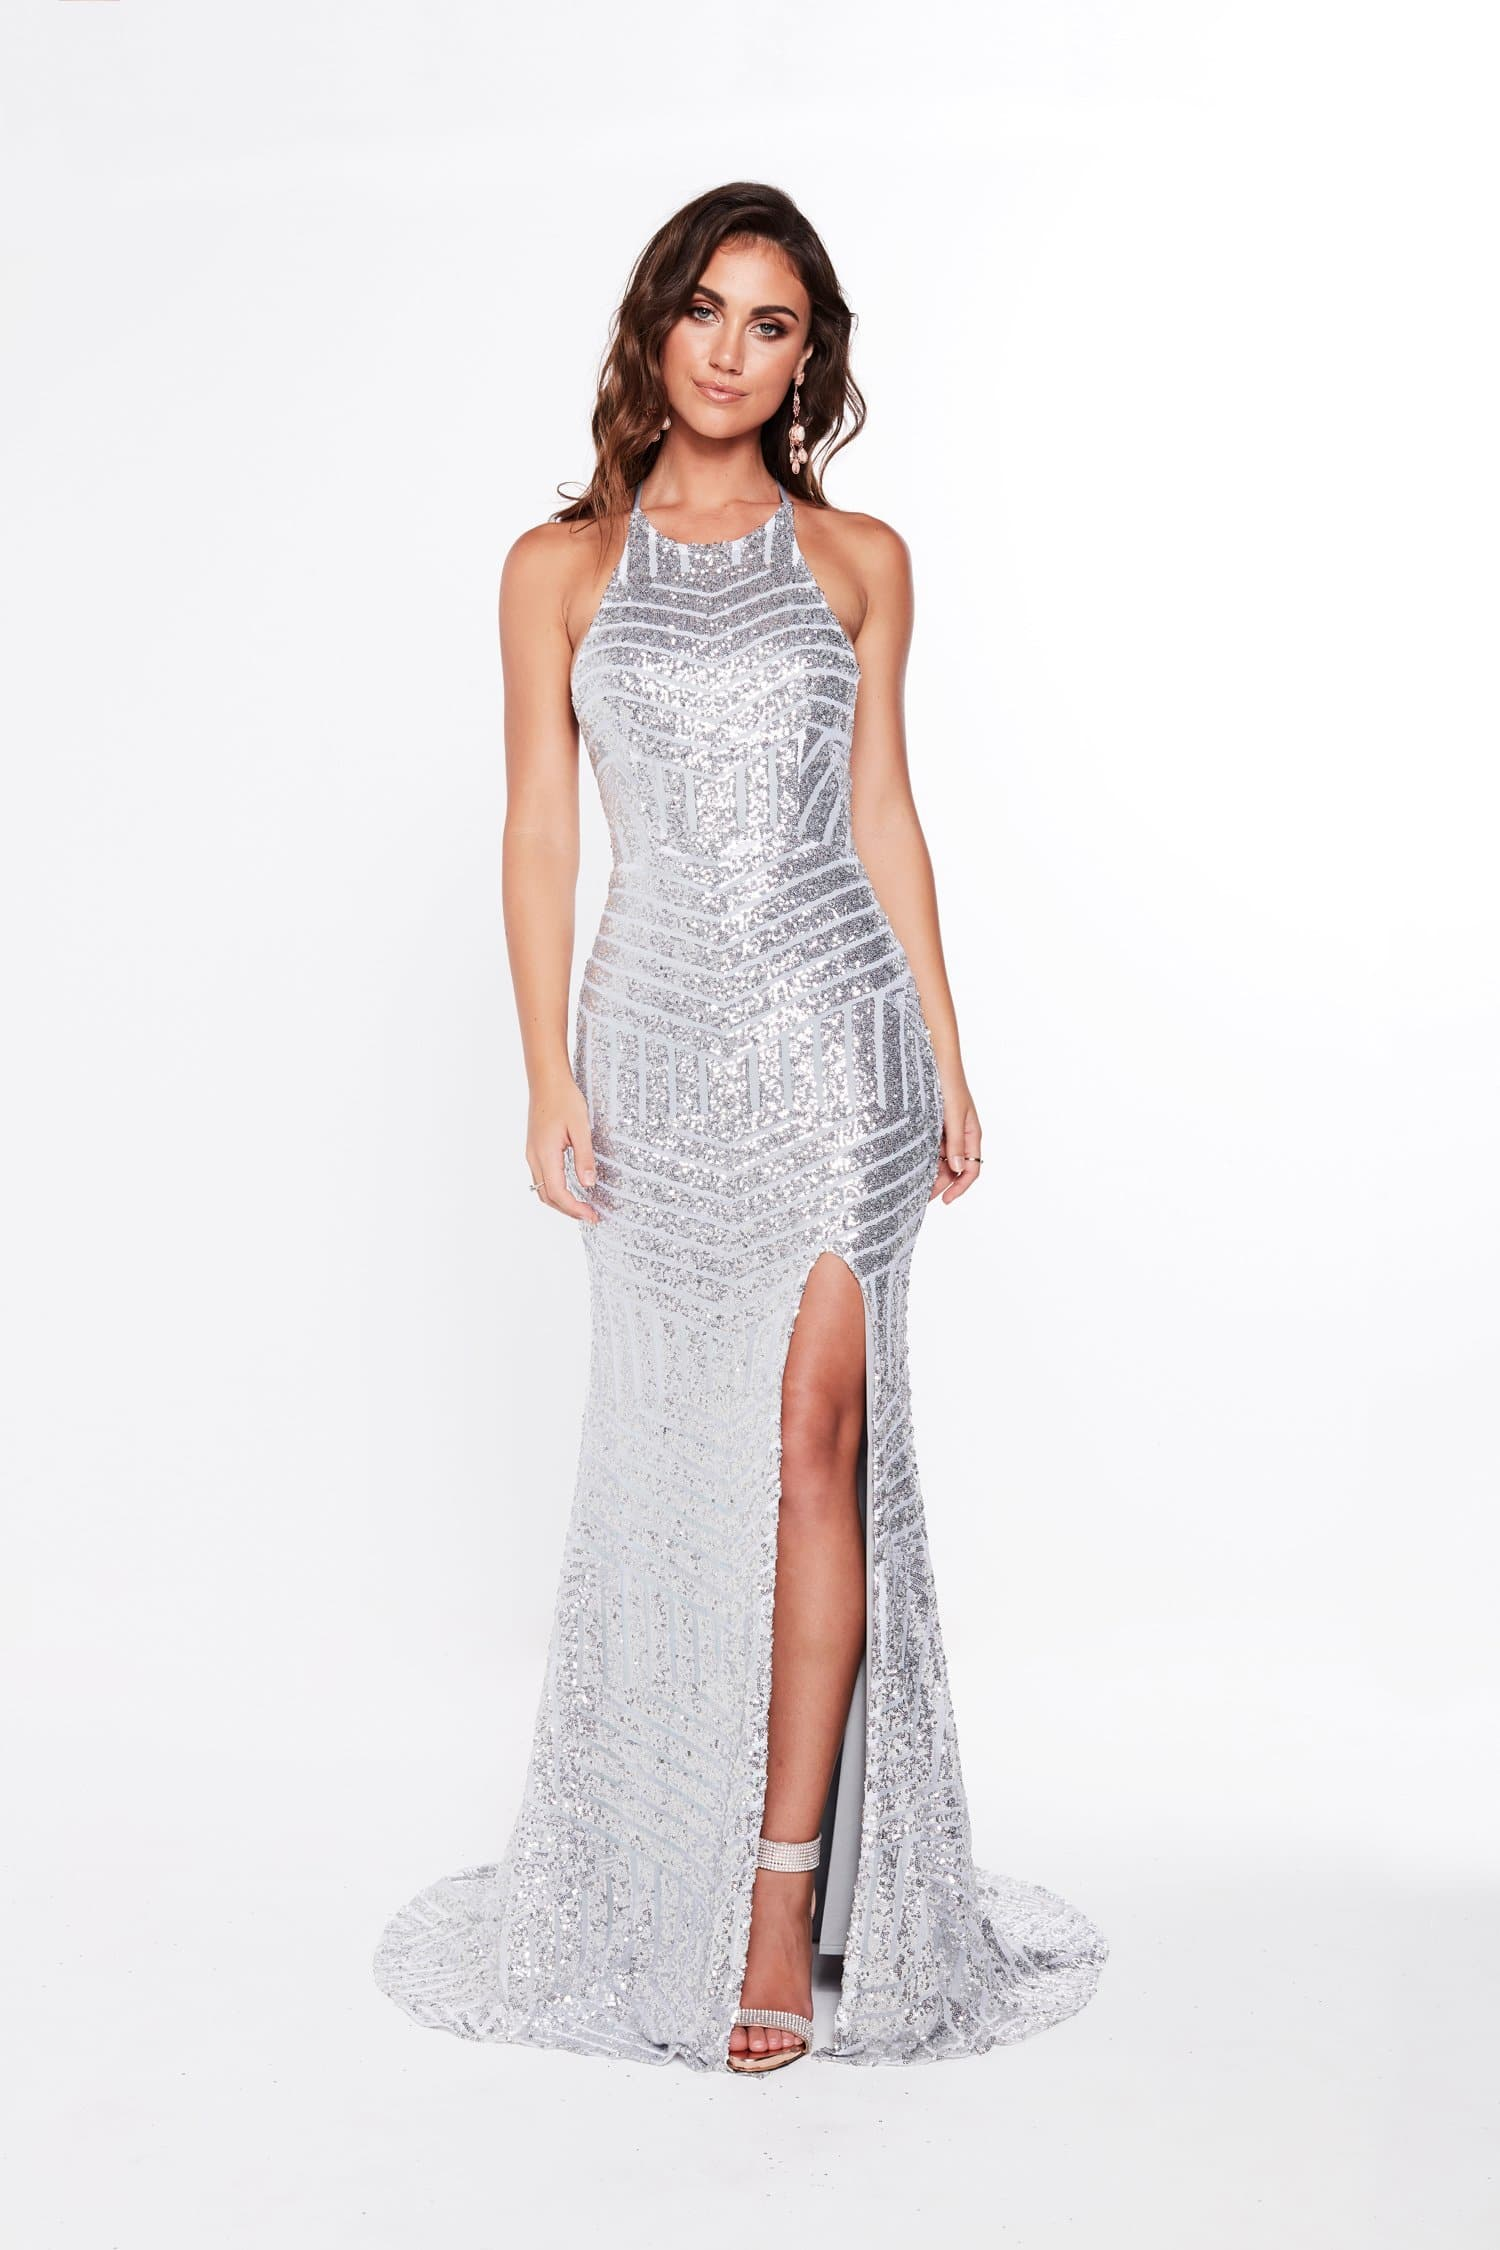 A&N Cosmo - Silver Sequins Gown with High Neckline and Lace Up Straps